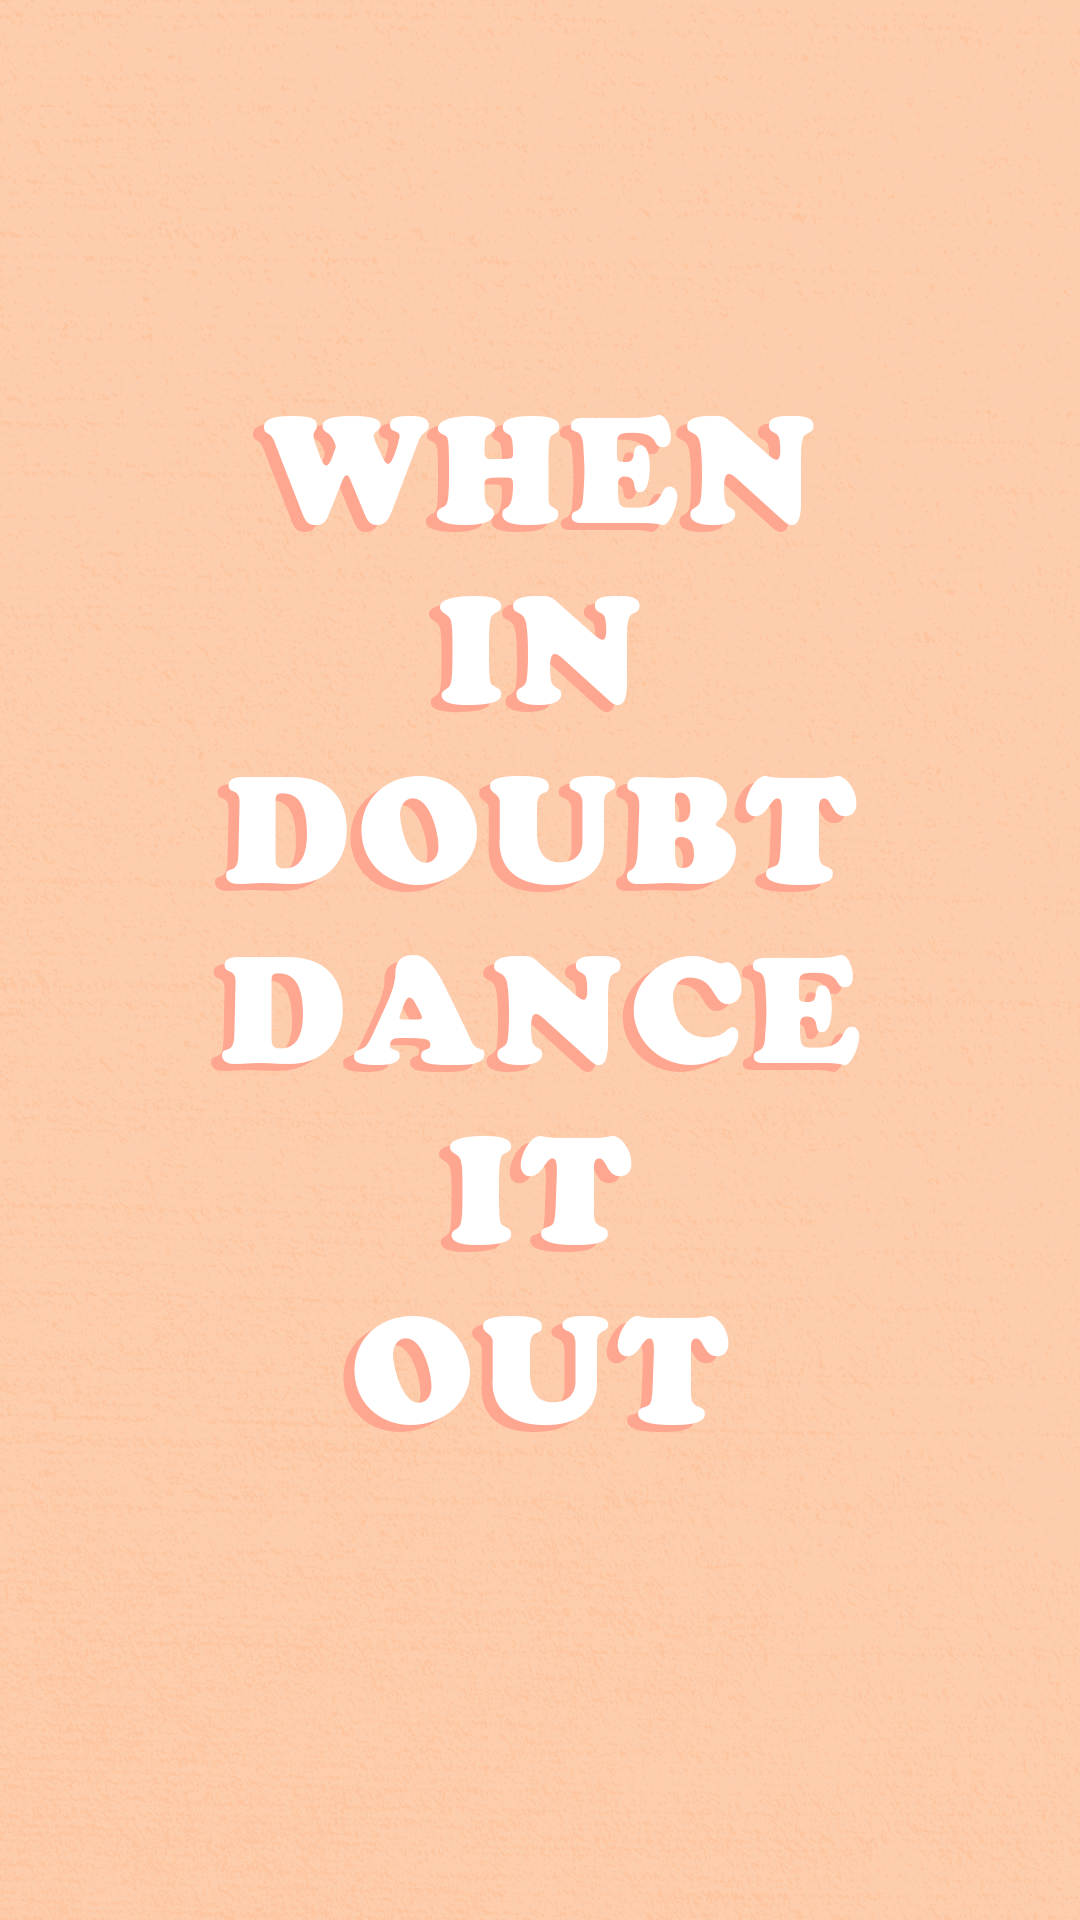 Pin By Madison Crump On Wise Words Dance Quotes Happy Words Dance It Out